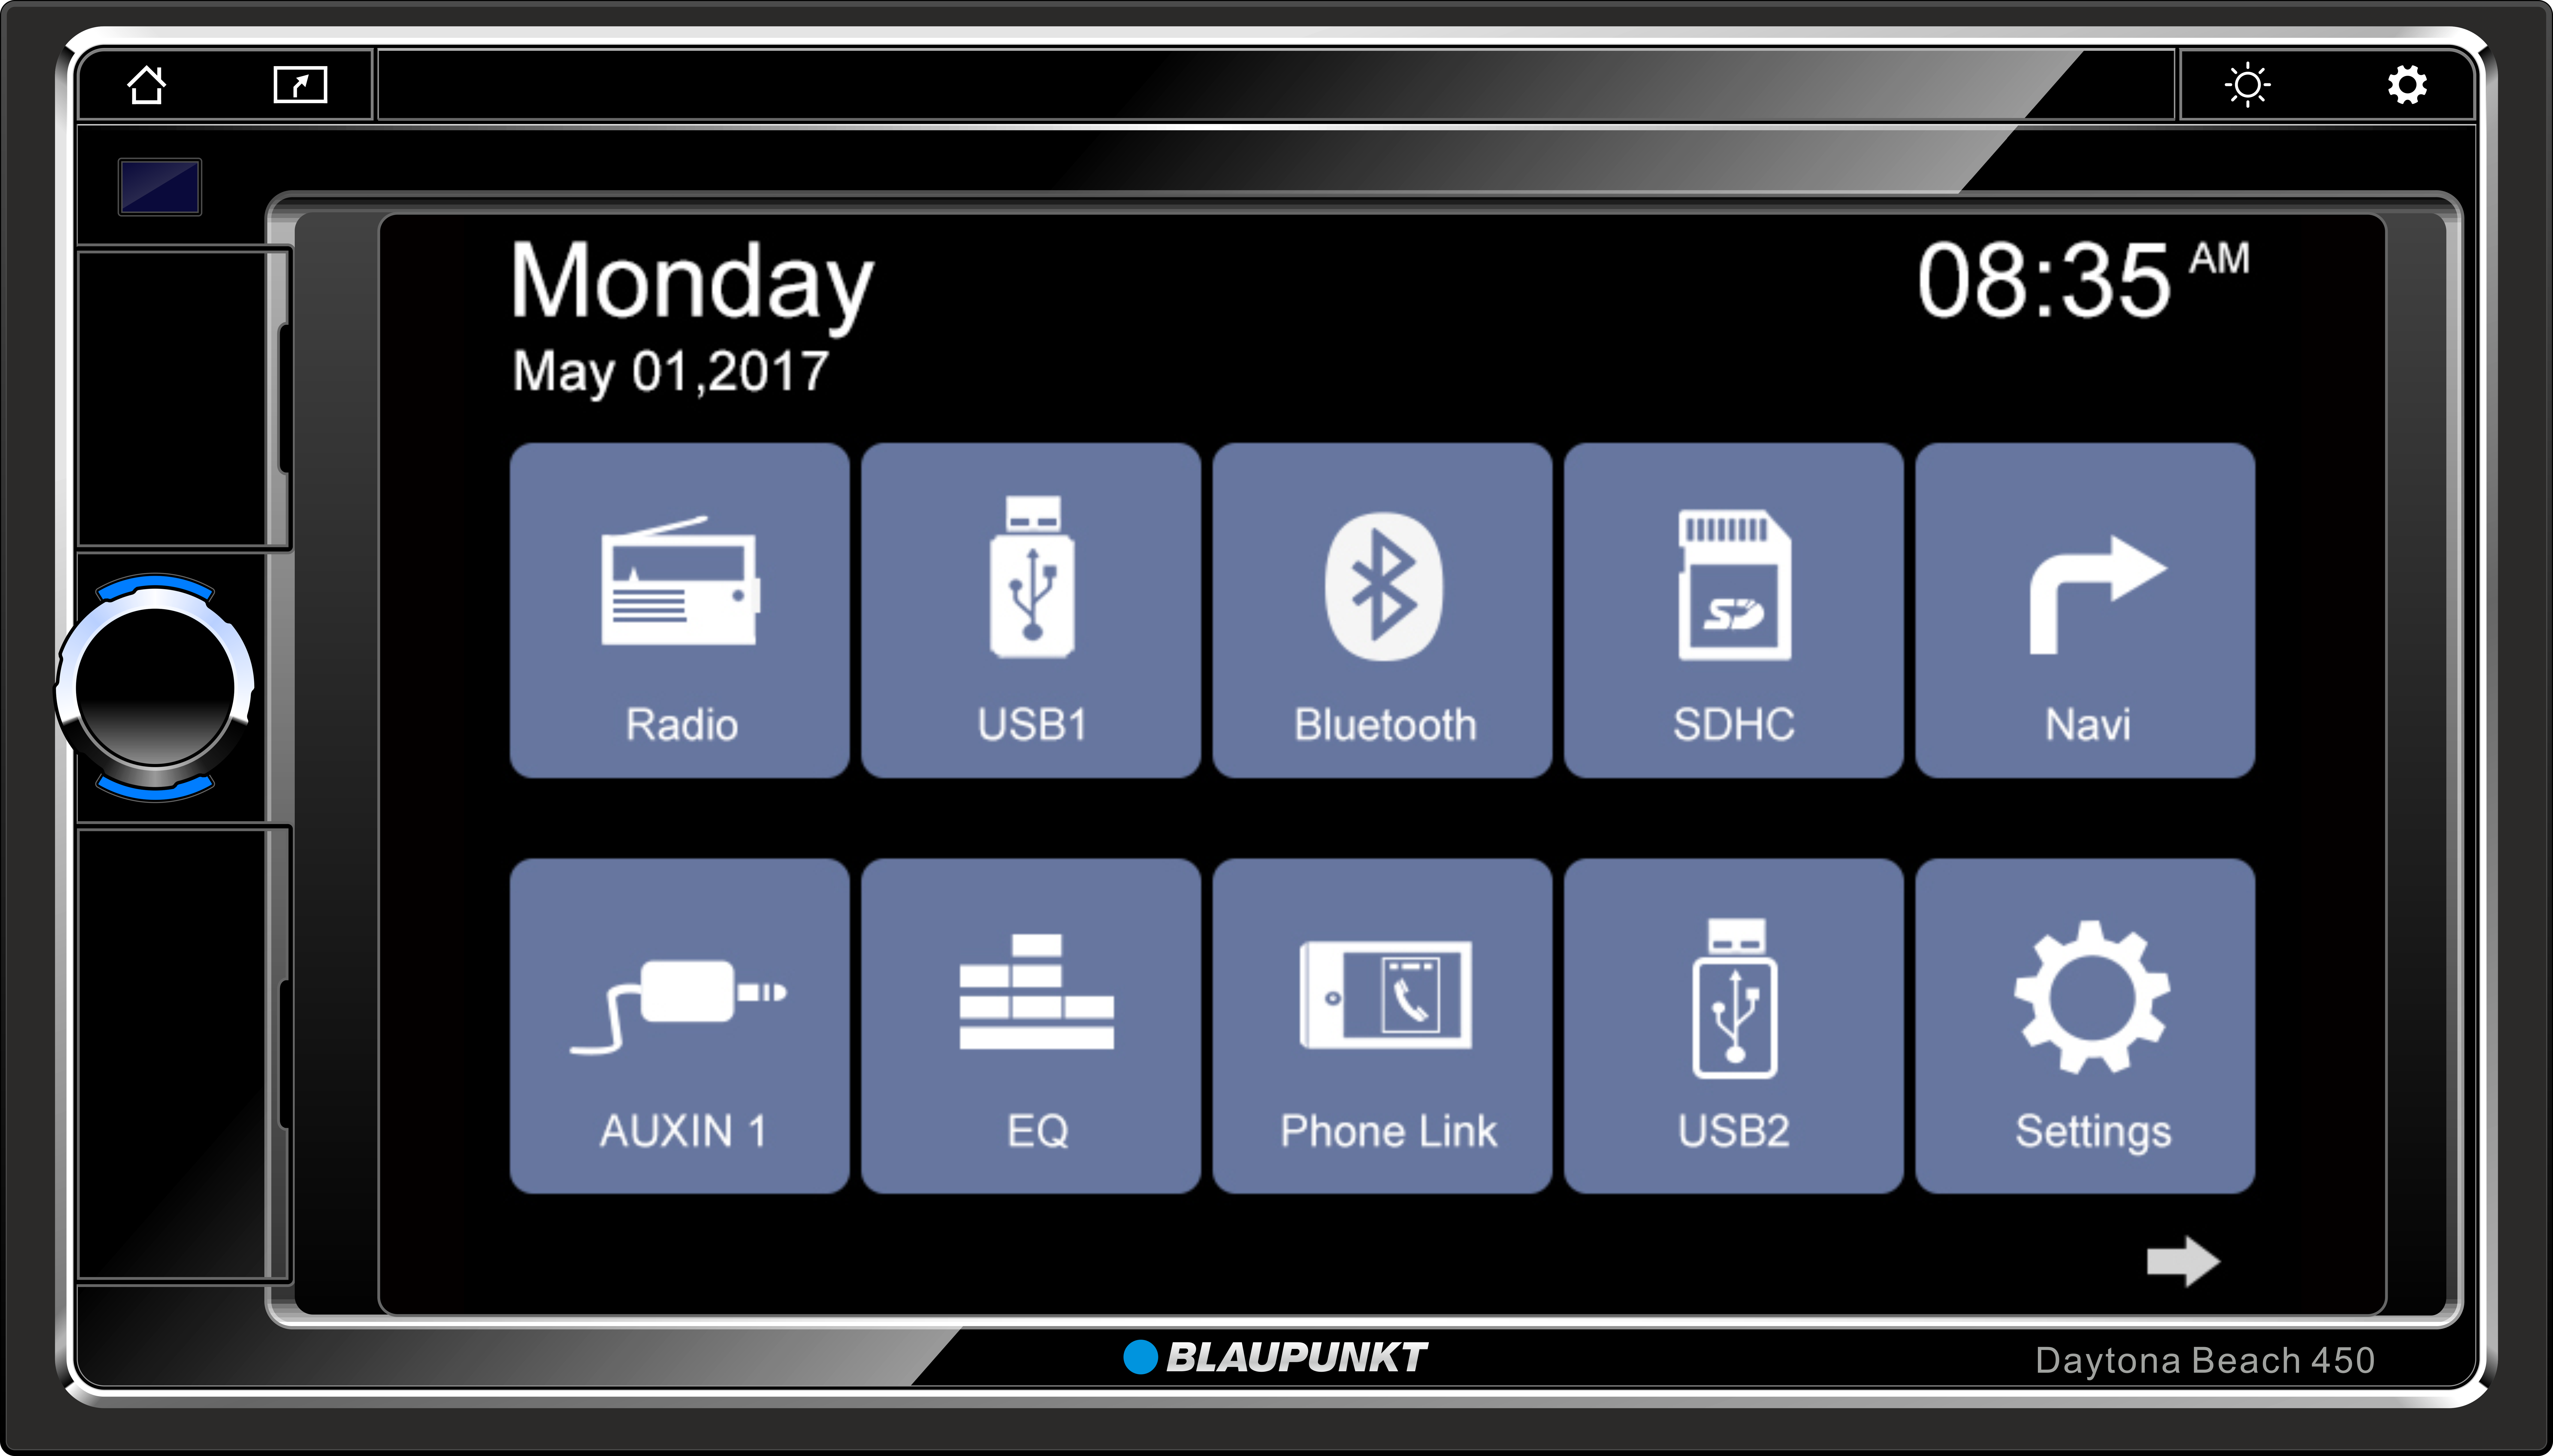 The new symphony series is a mix of blaupunkt s german legacy new looks while staying